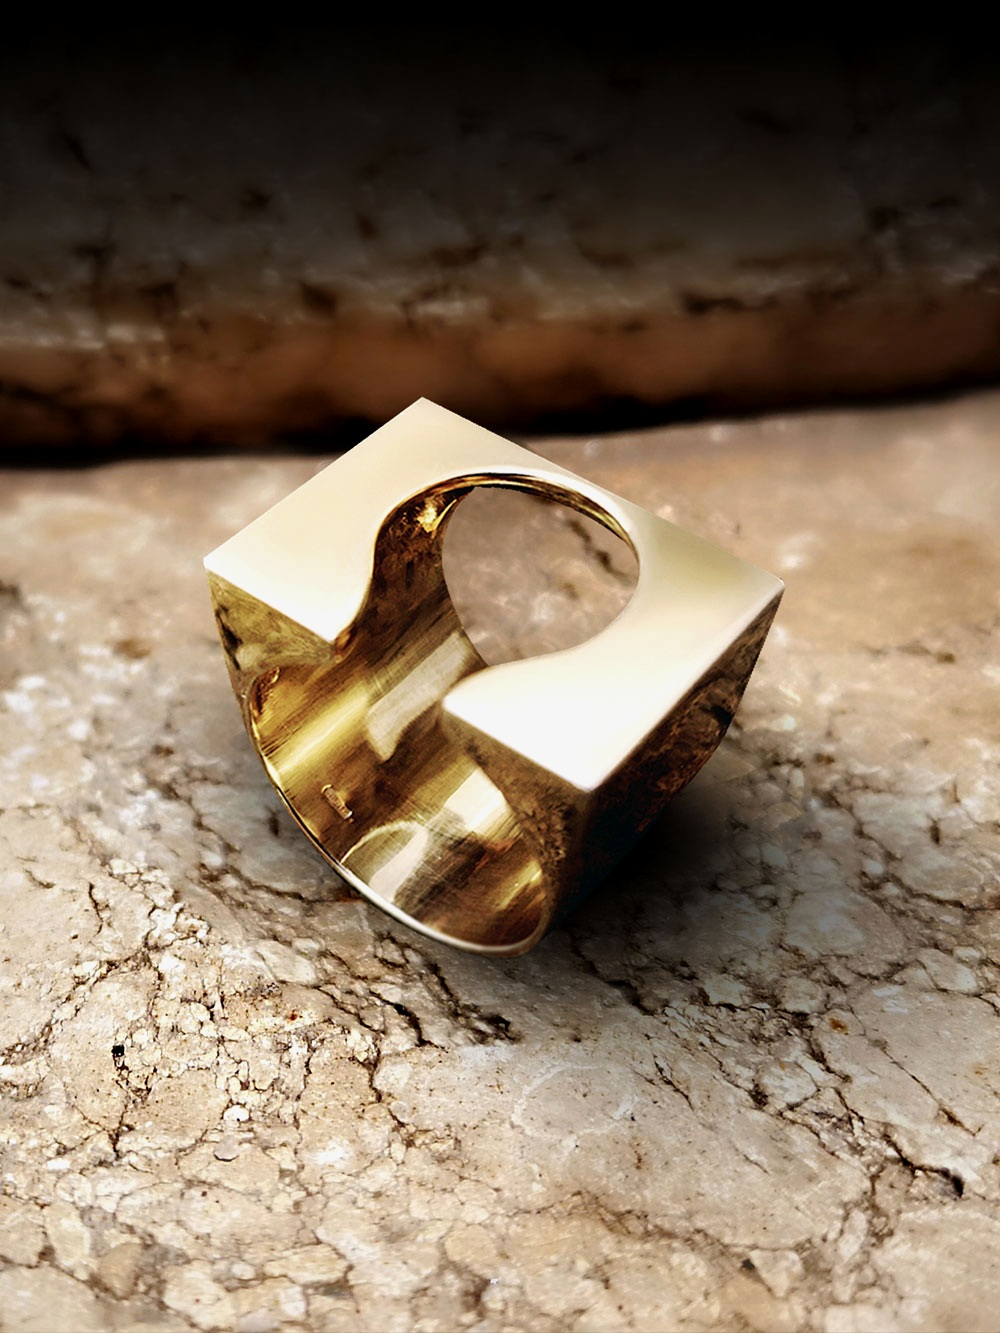 the hathor ring n°0 - ~ limited edition signed 30 copies ~ available in gold 18K / pink gold / white gold